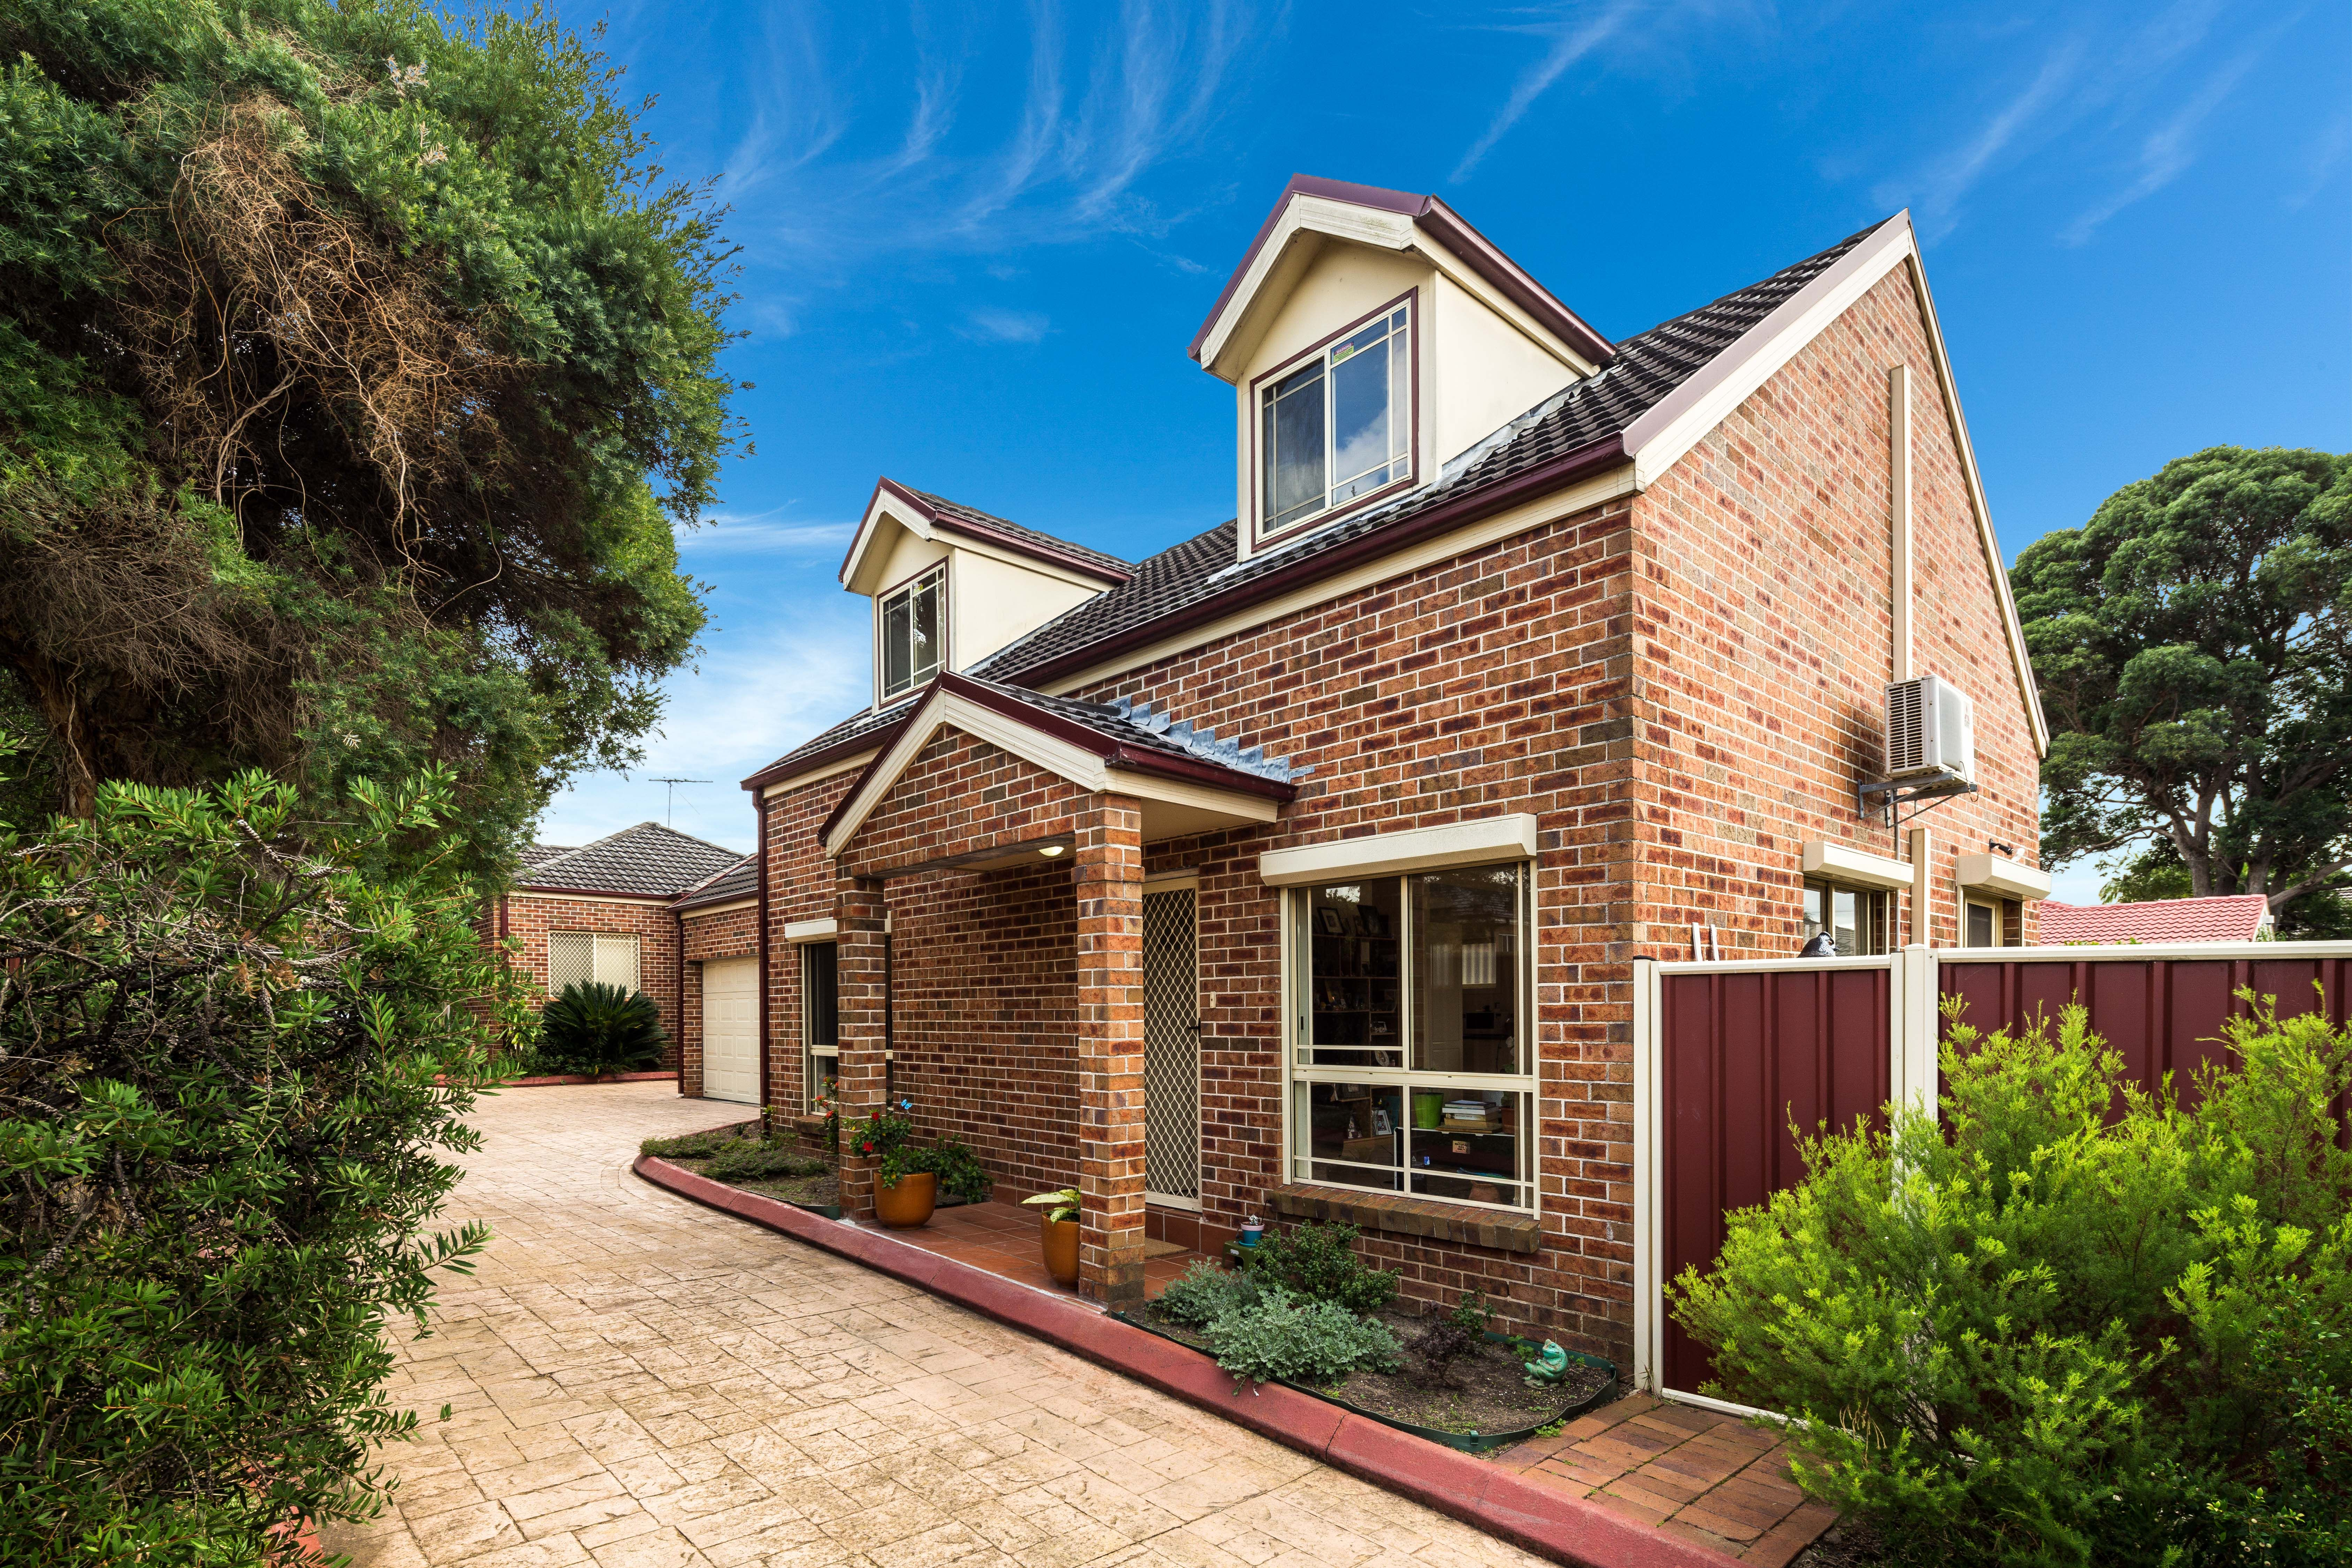 3/53 Pringle Avenue, Bankstown NSW 2200